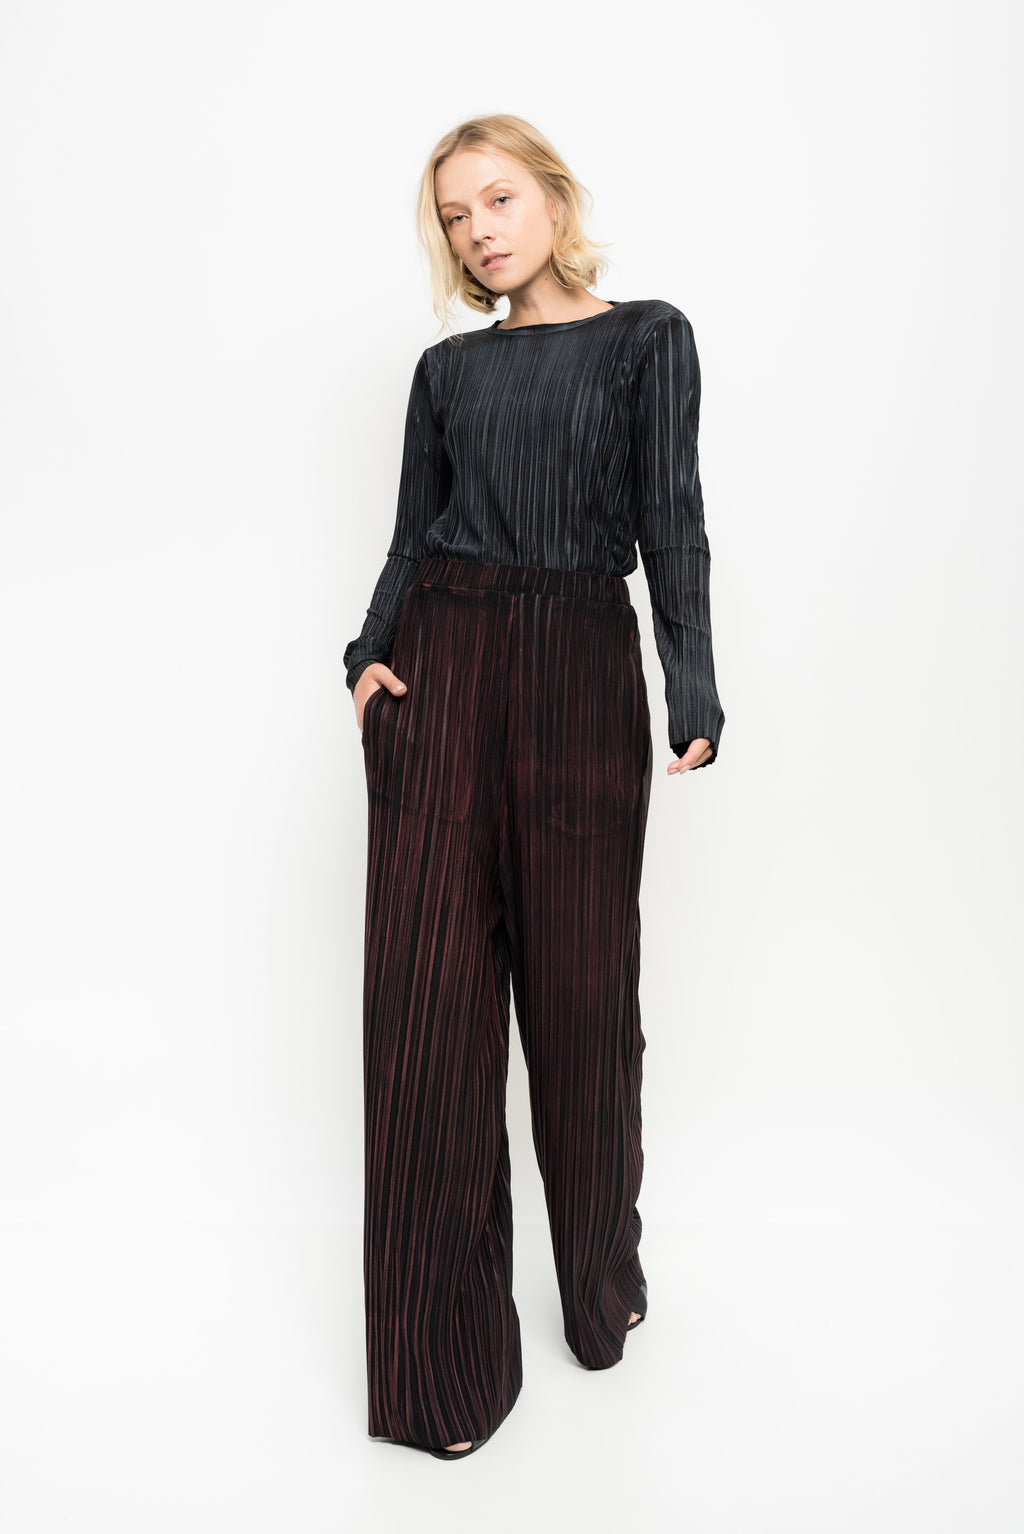 WIDE PLEATED PANTS (clara plants)